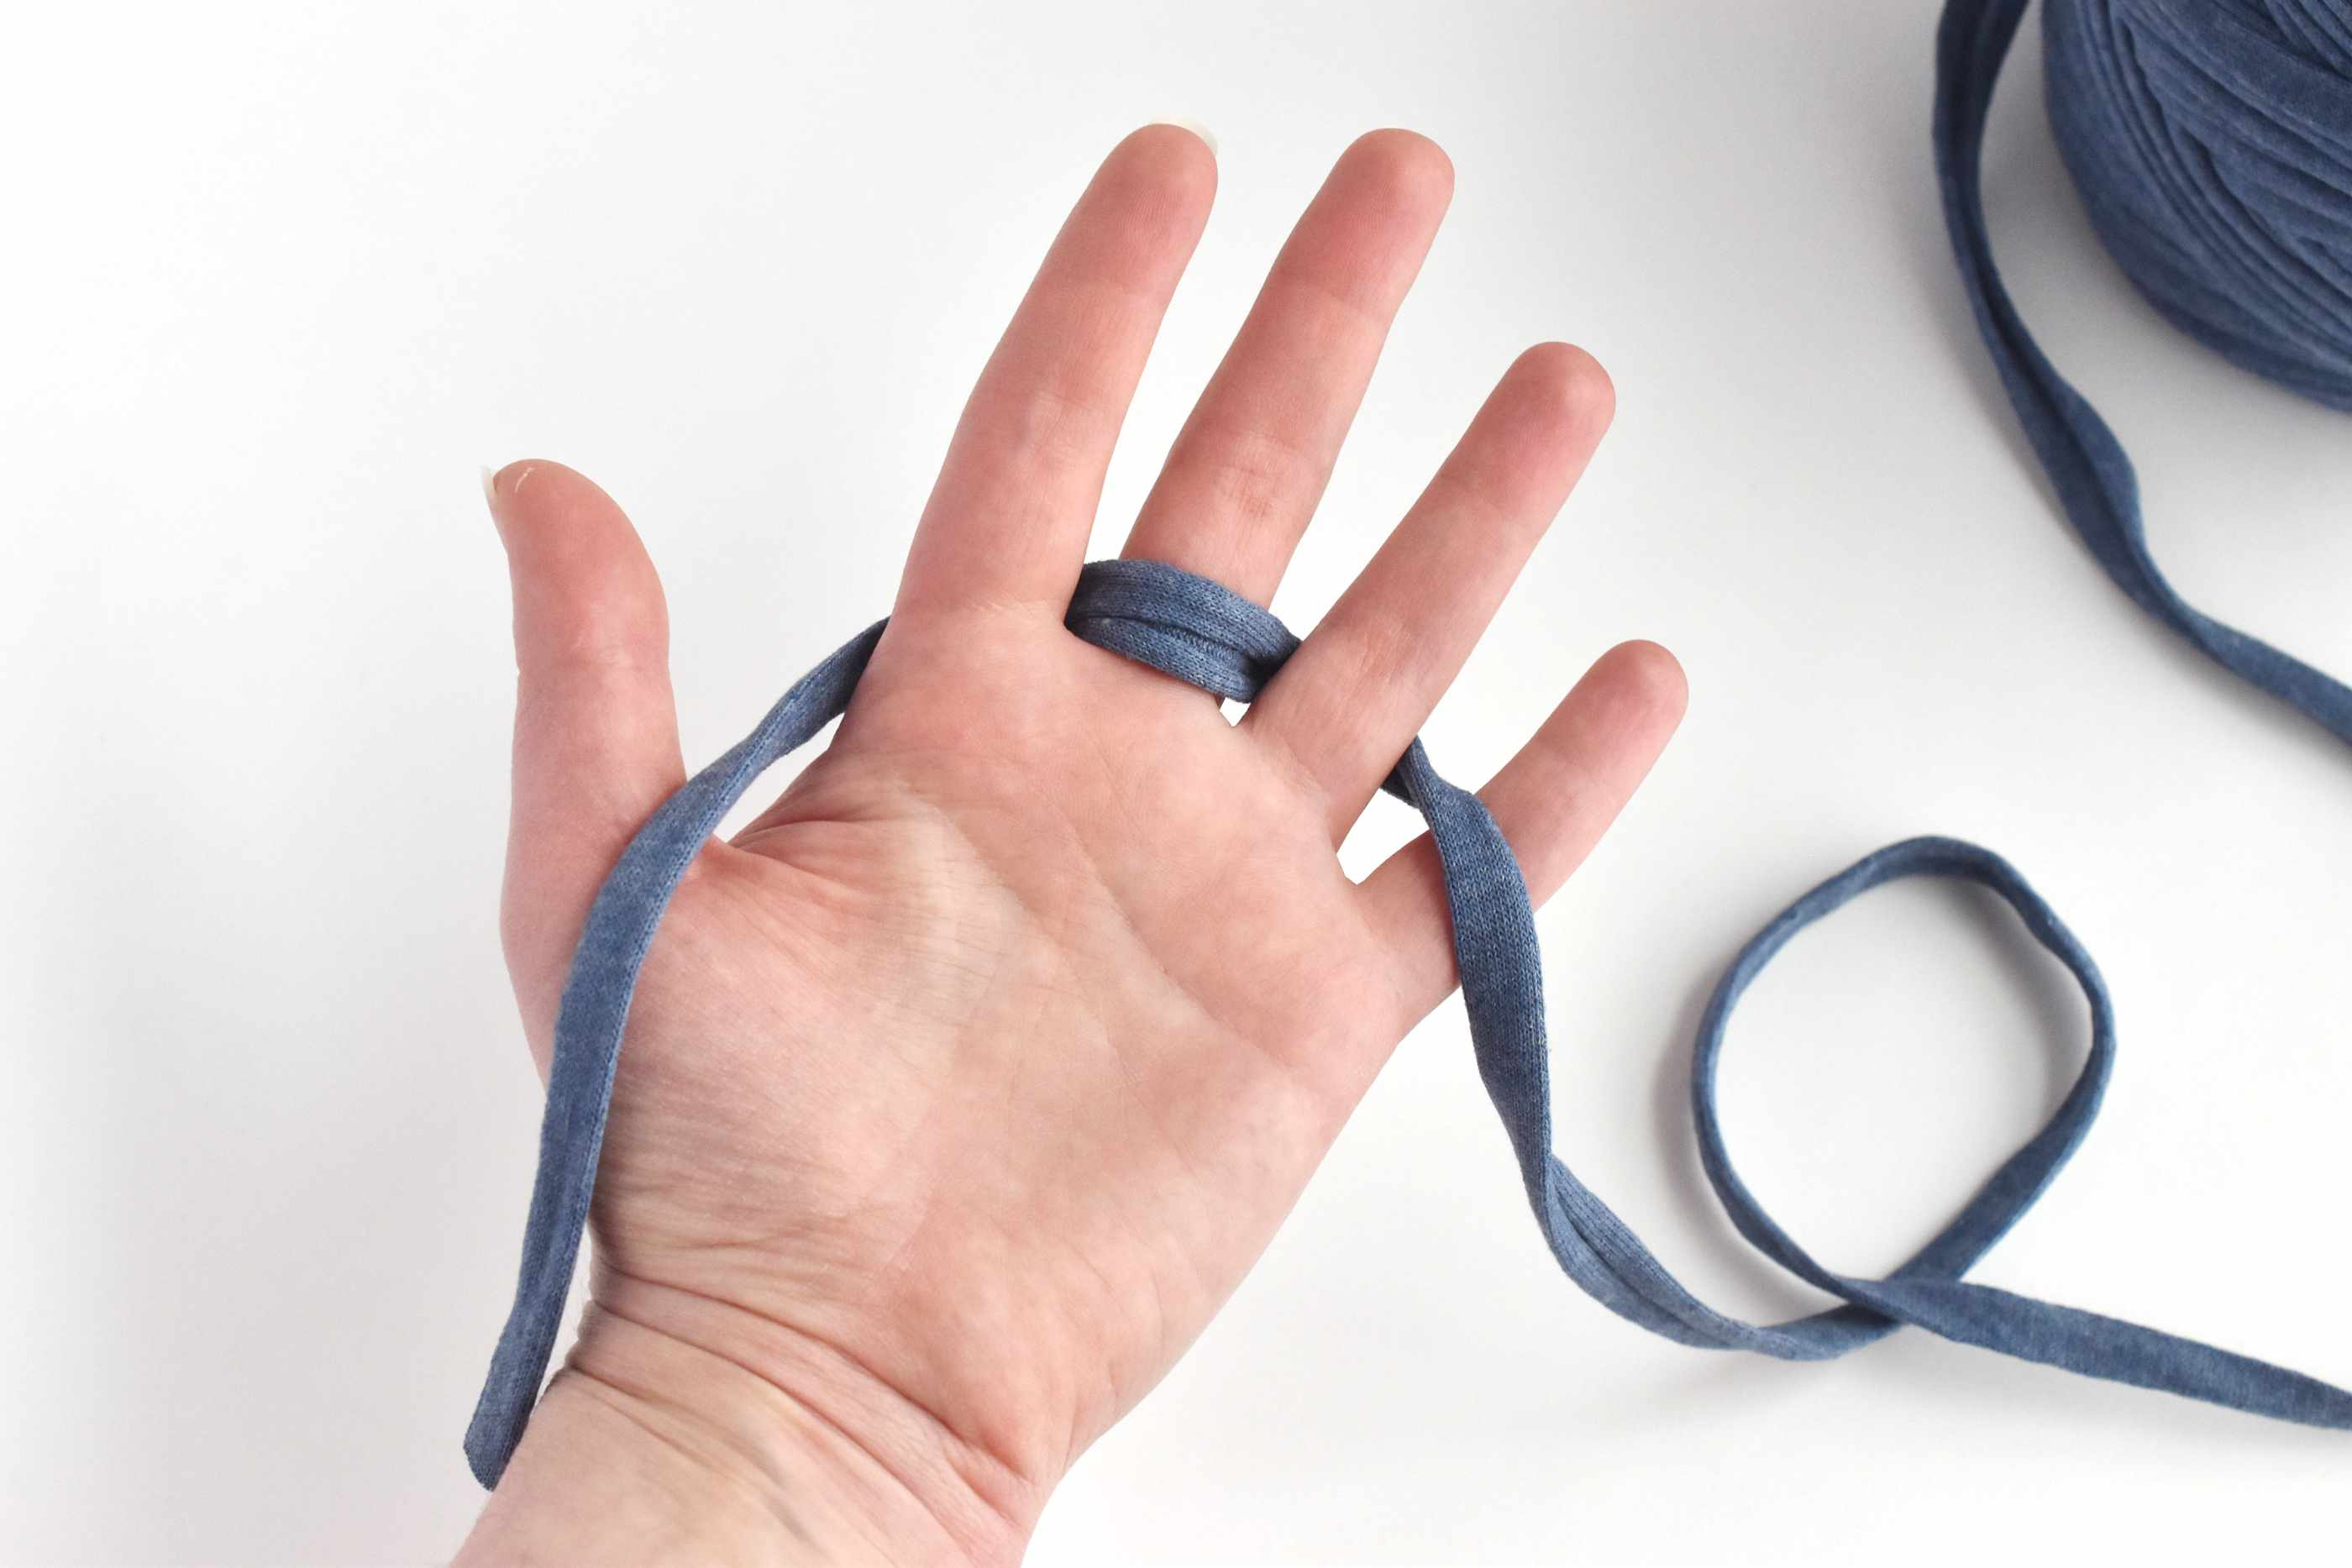 Wrap the Yarn Between Your Fingers